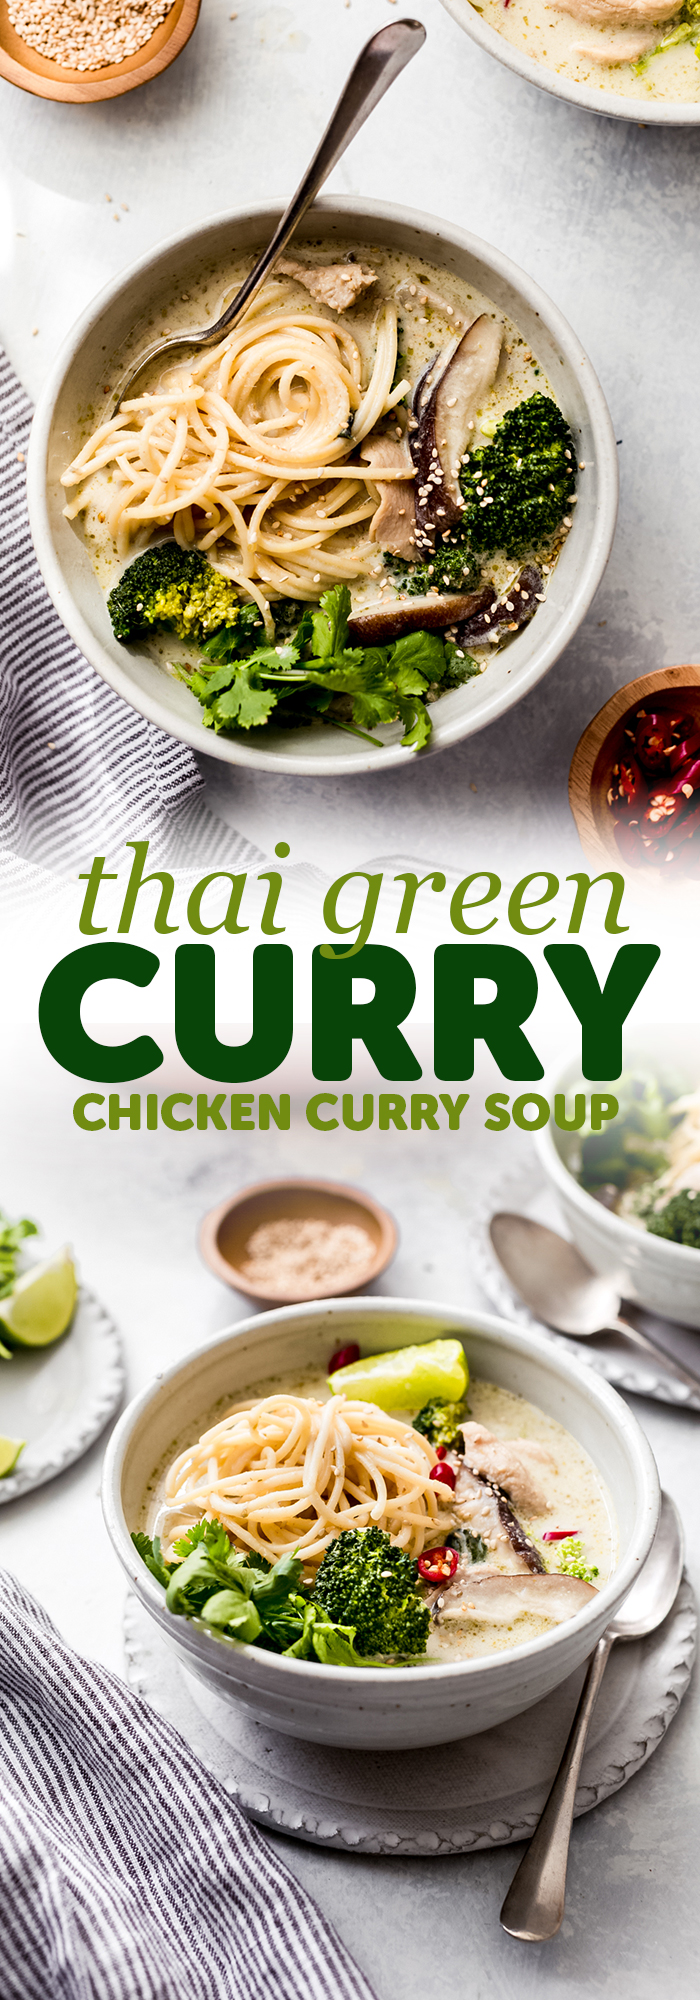 Thai Green Curry Chicken Soup - Learn how to make a 20 minute chicken curry soup that'll please the whole family! Tons of noodles, tender chicken, and creamy green curry soup! #thaigreencurry #greencurrysoup #greencurrychickensoup #chickensoup #chickencurrysoup #soup #comfortfood | Littlespicejar.com